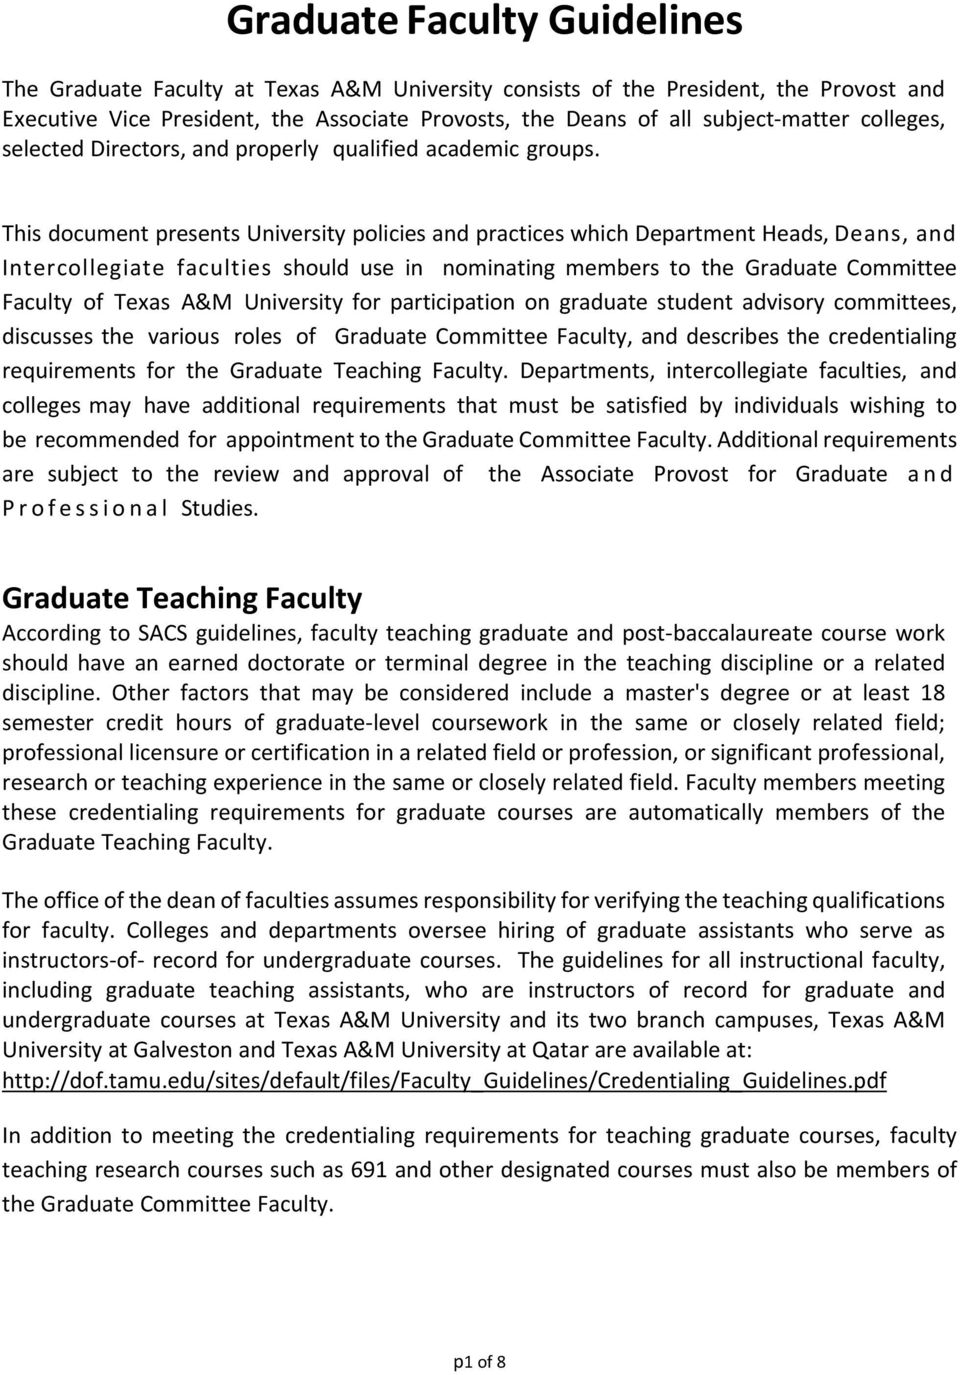 This document presents University policies and practices which Department Heads, Deans, and Intercollegiate faculties should use in nominating members to the Graduate Committee Faculty of Texas A&M